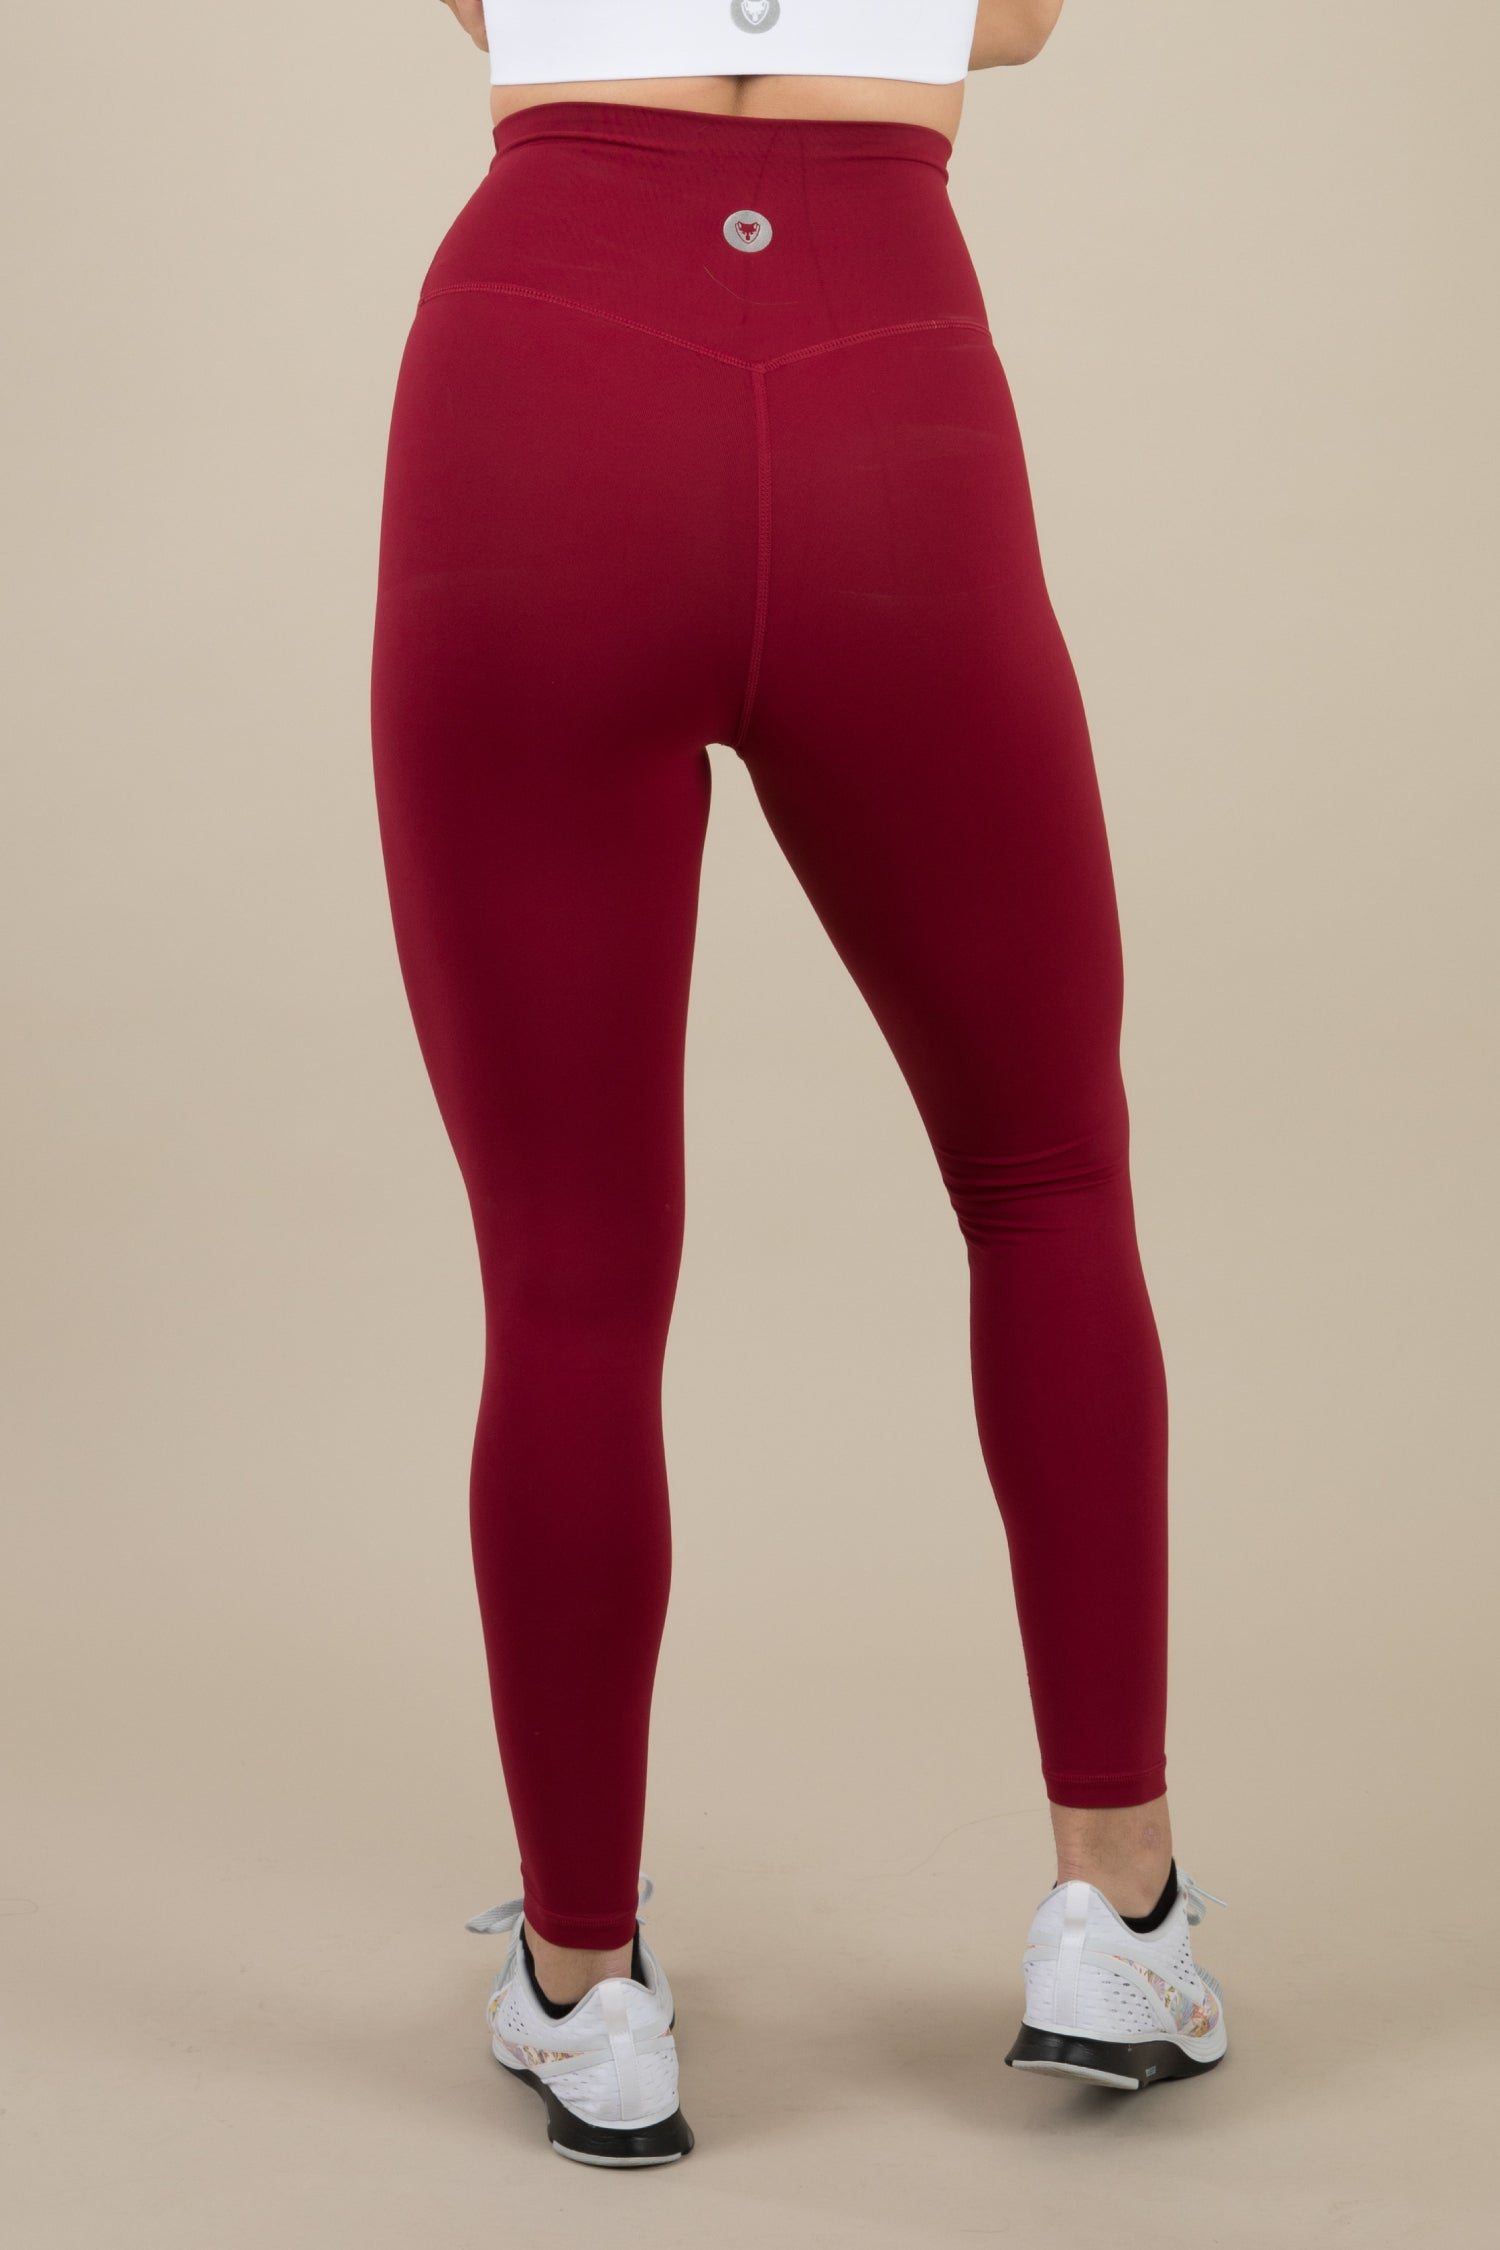 900c99a31626a Sensation Leggings - Cherry Red - WearWolf Clothing Ltd